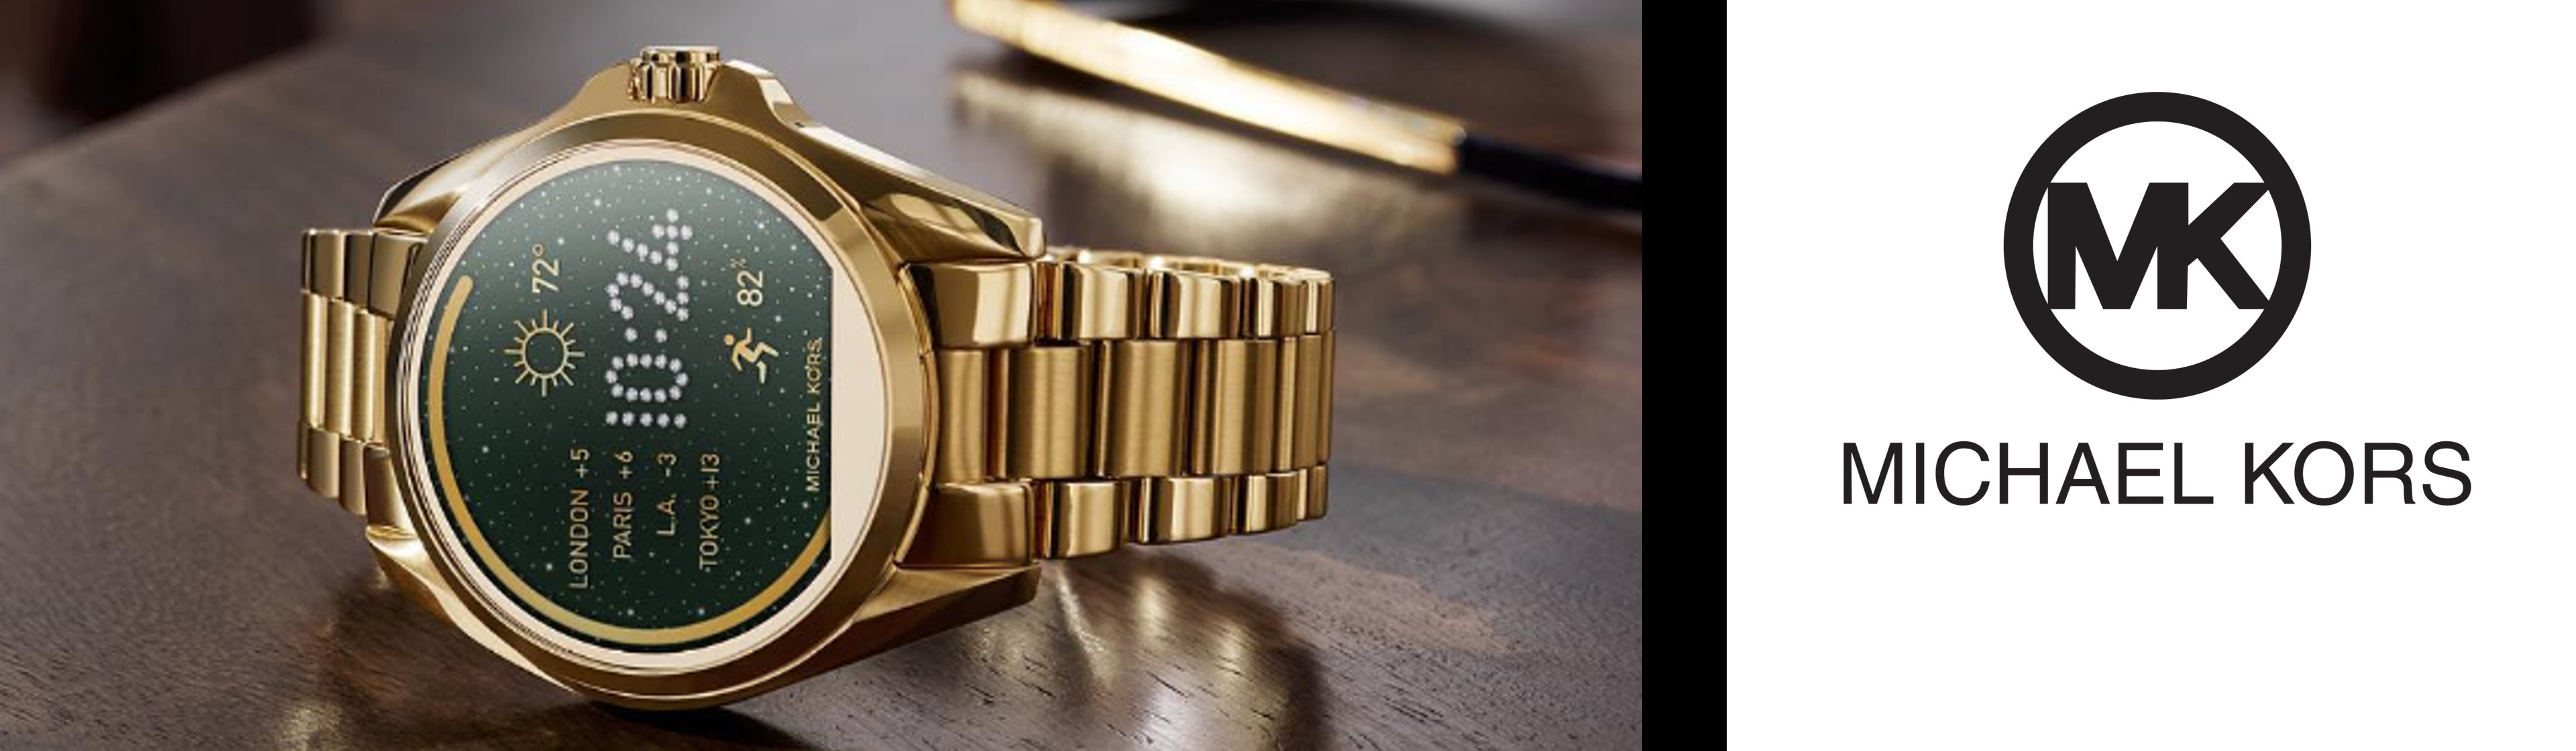 Your First ACCESS to the Michael Kors Smartwatch